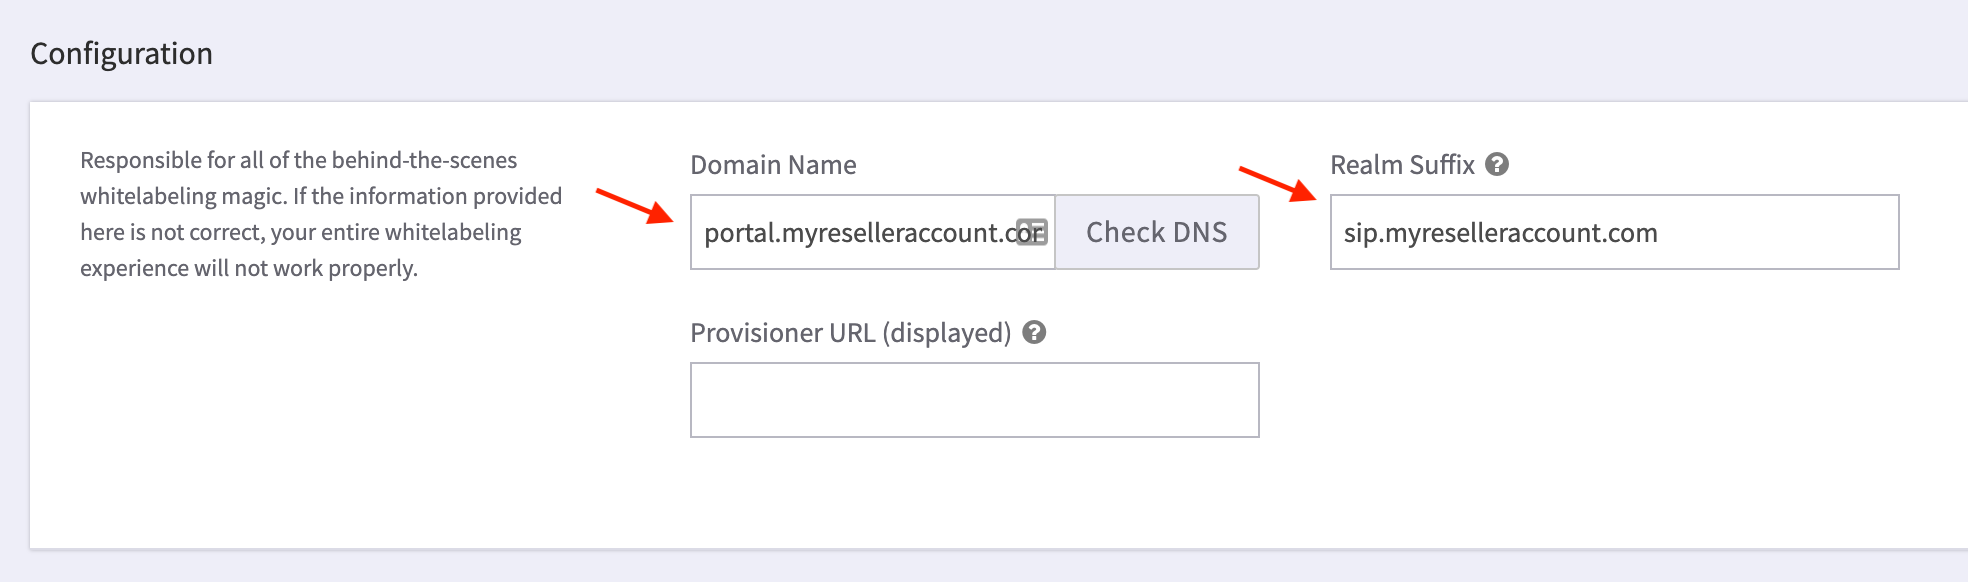 DNS Step 1 Enter domain name.png